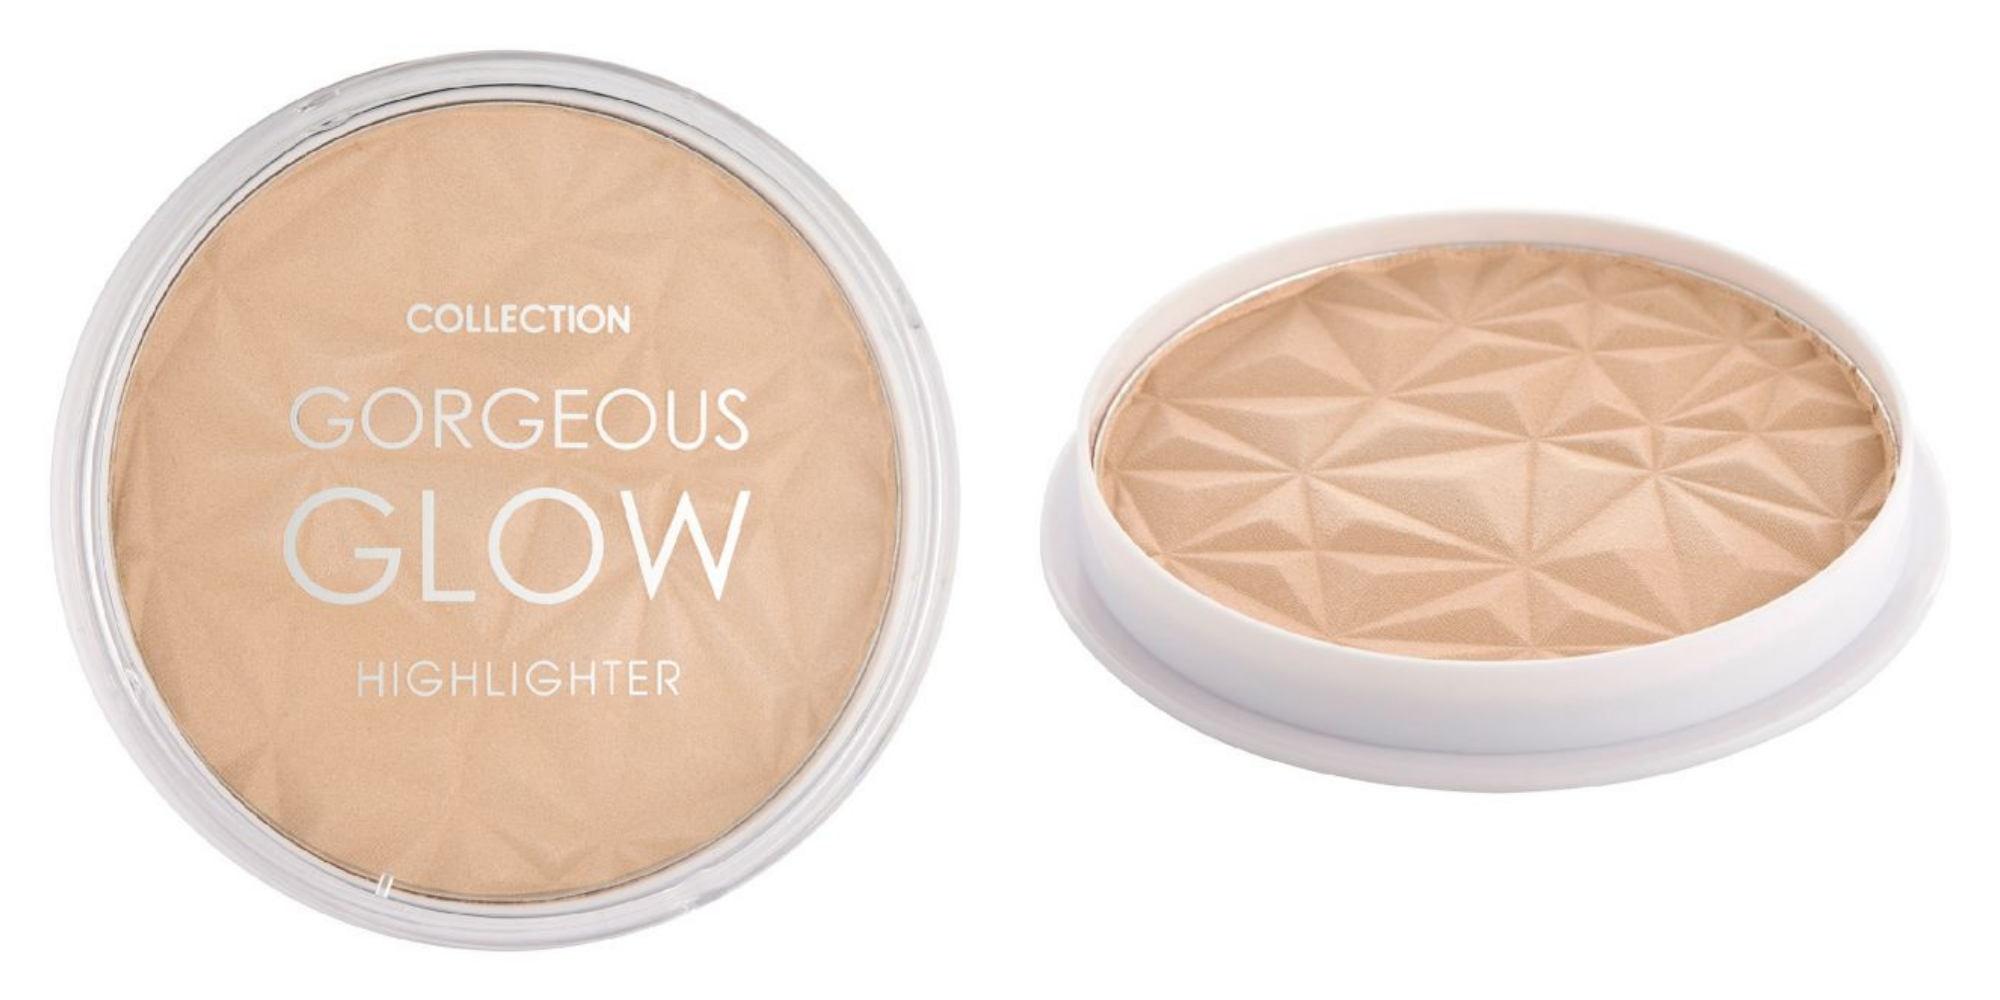 Collection Gorgeous Glow Powder Highlighter